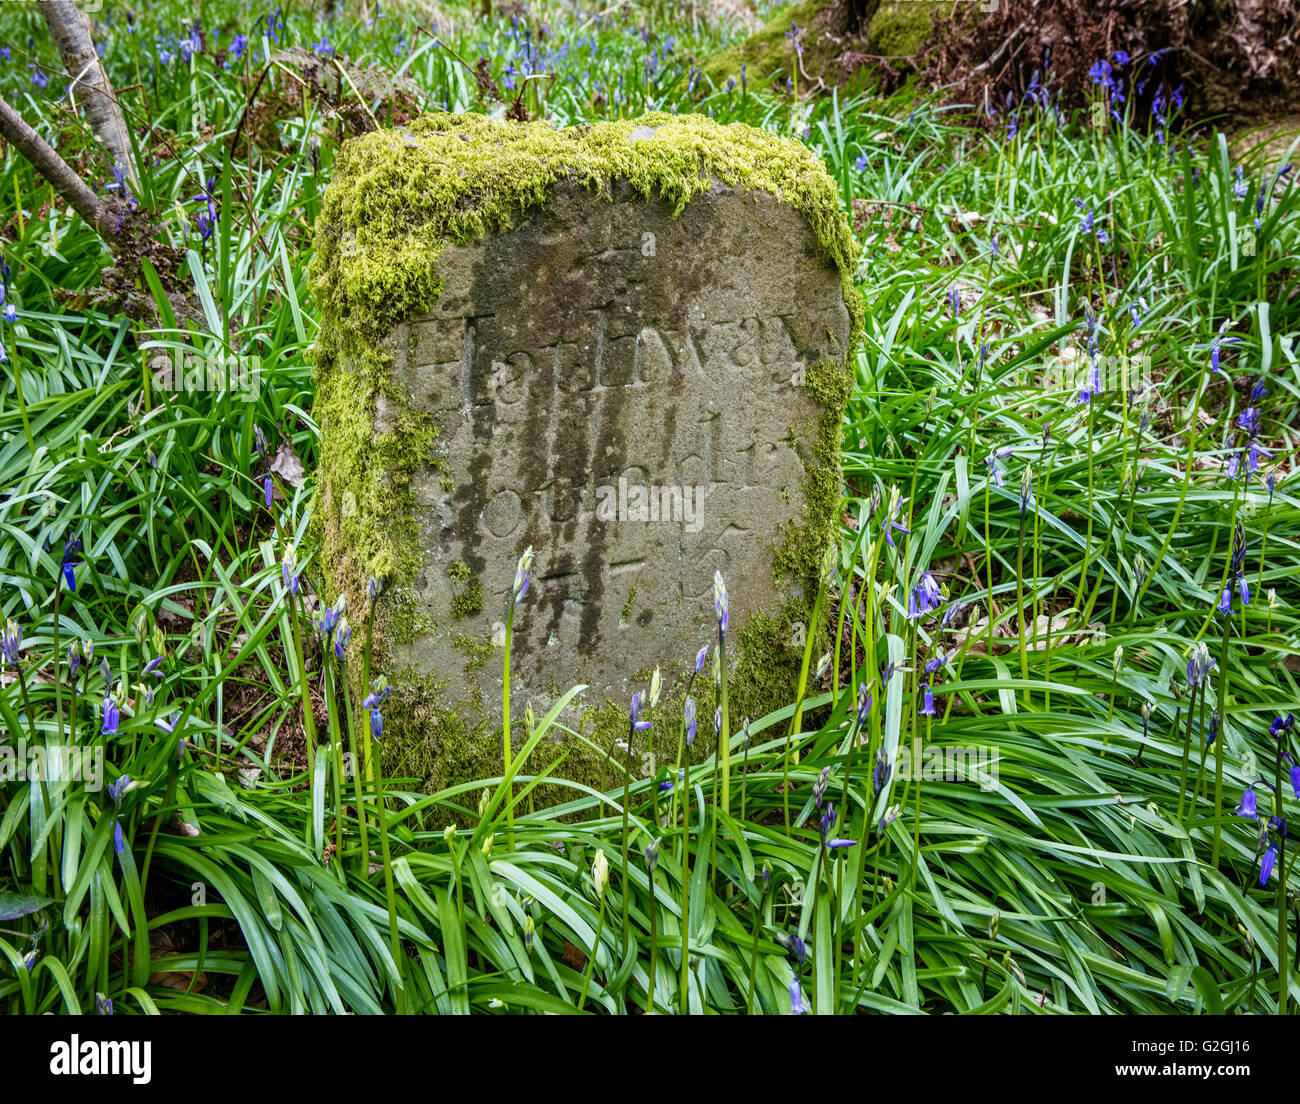 Moss covered Hathway Boundary stone with the date 1775 in a Somerset bluebell wood UK - Stock Image